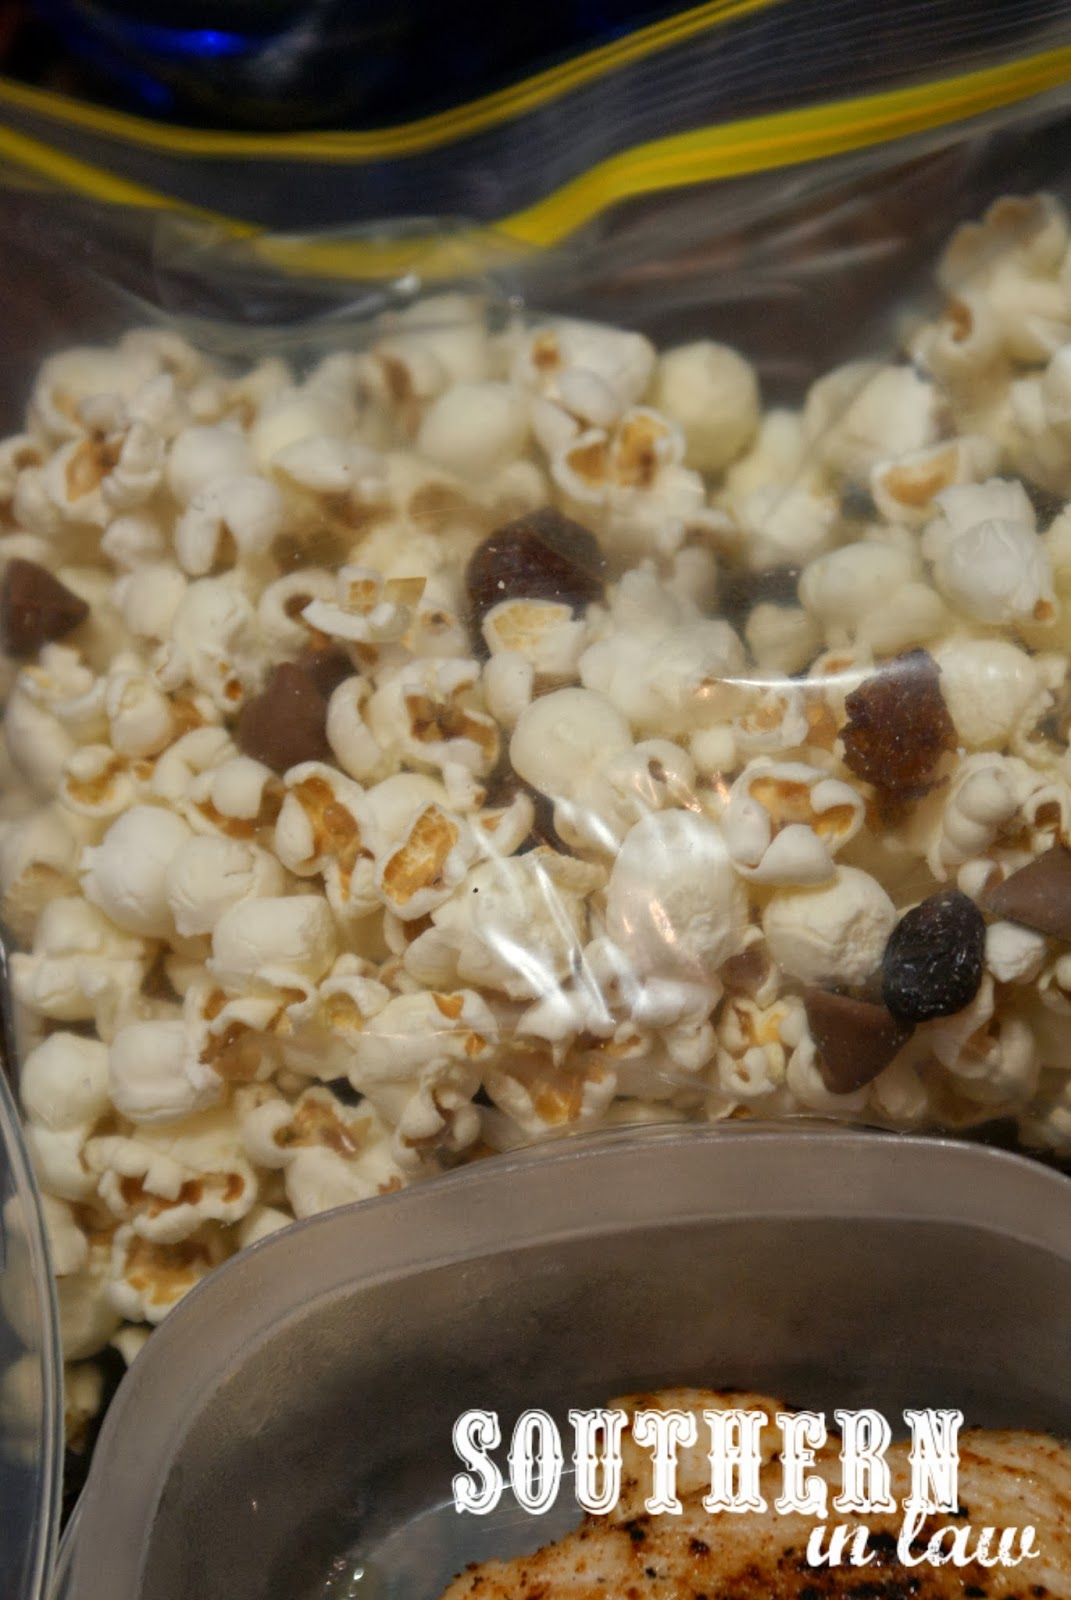 Picnic Date Night at the Sunset Cinema - Popcorn Trail Mix with Chocolate Chips and Raisins